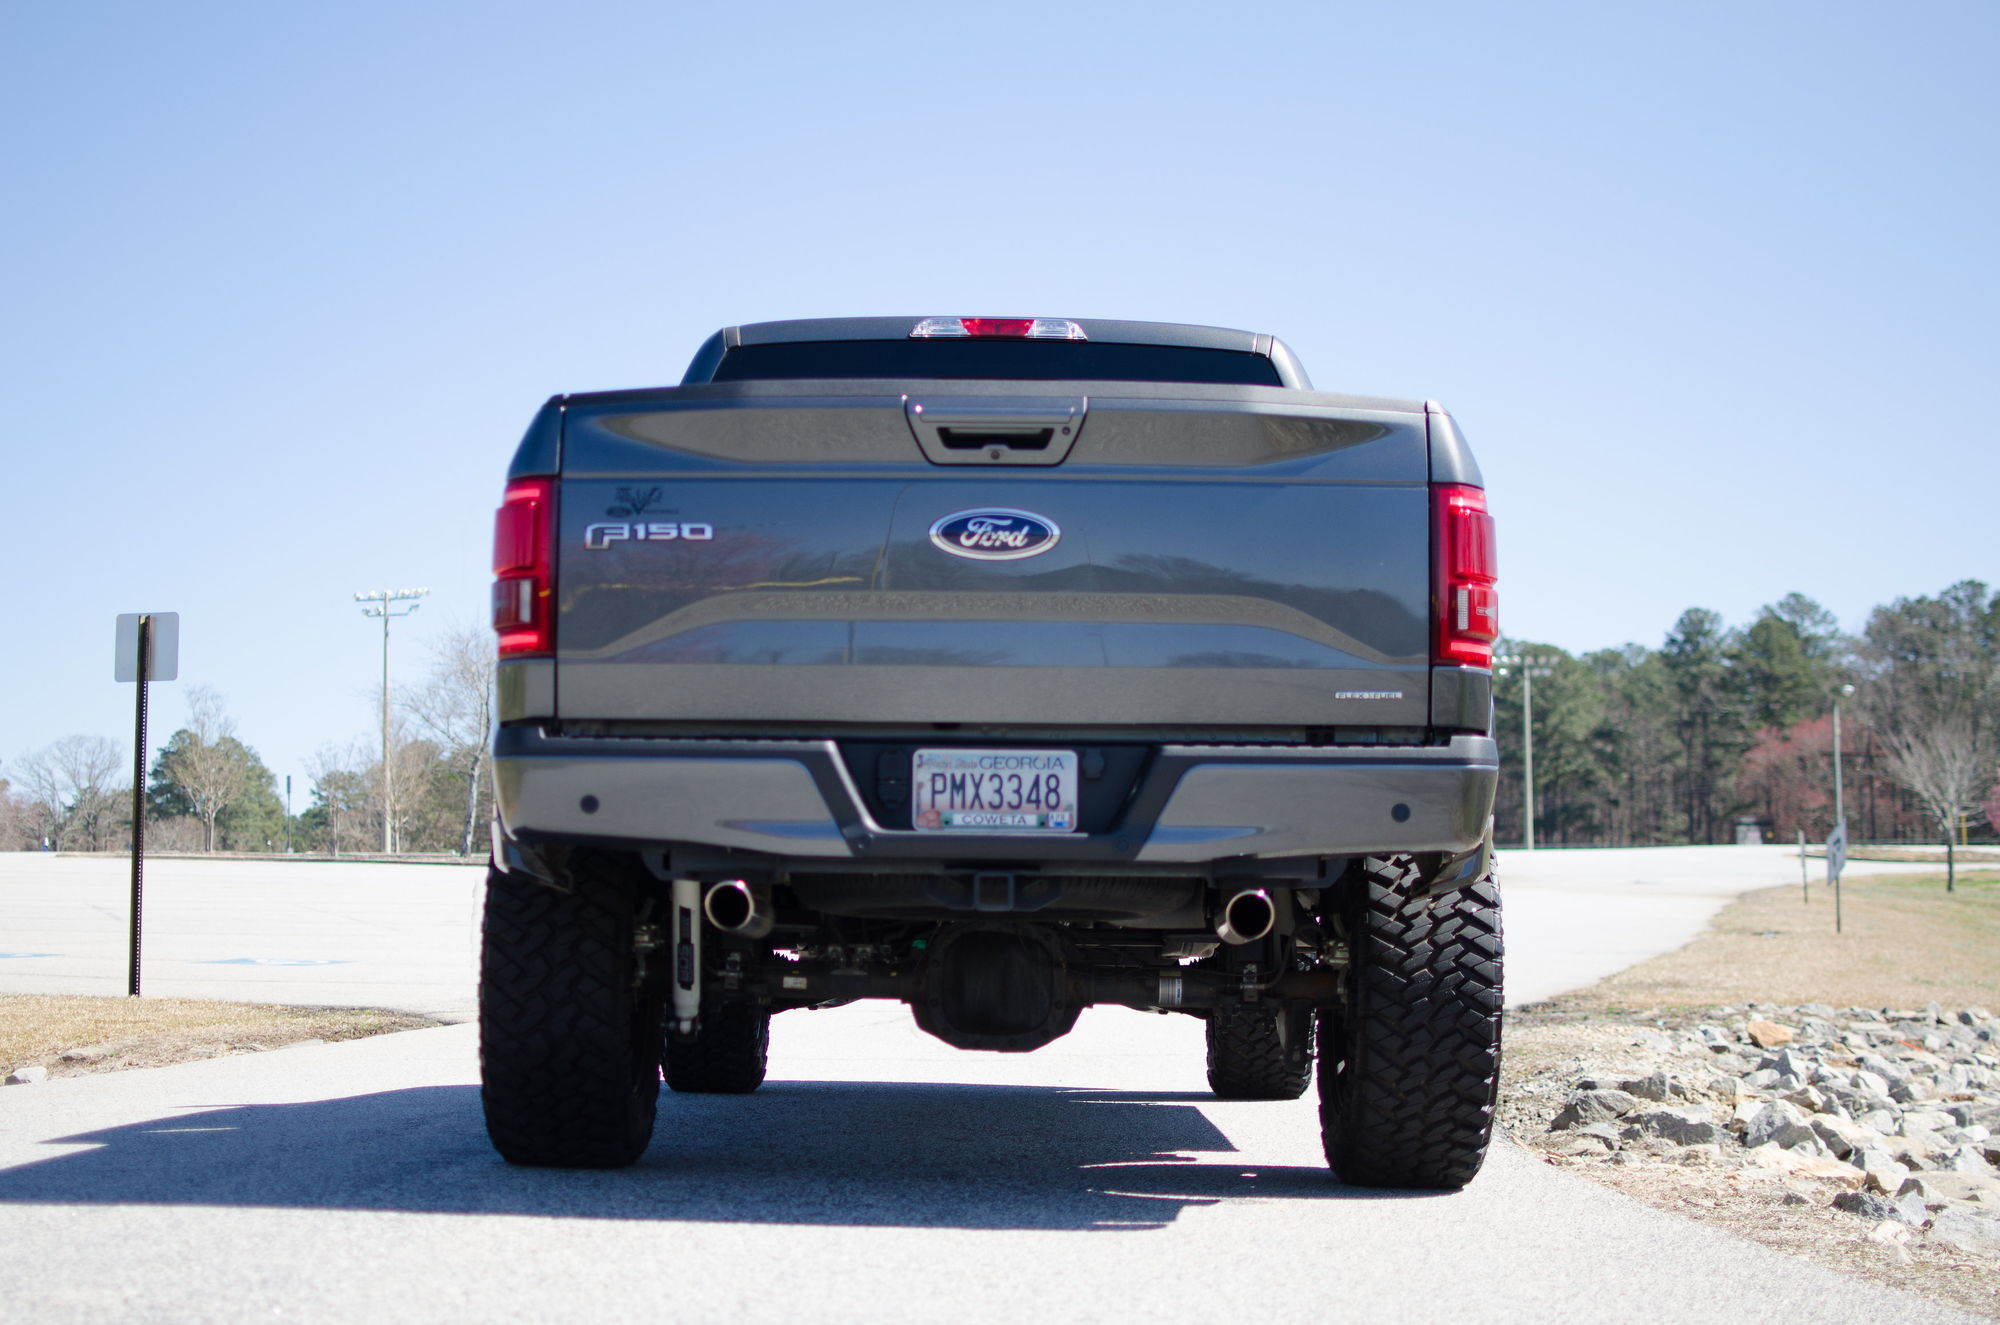 Lifted 2015 F150 >> Proffesional Pics 2015 F150 6 Inch Lift - Ford F150 Forum - Community of Ford Truck Fans